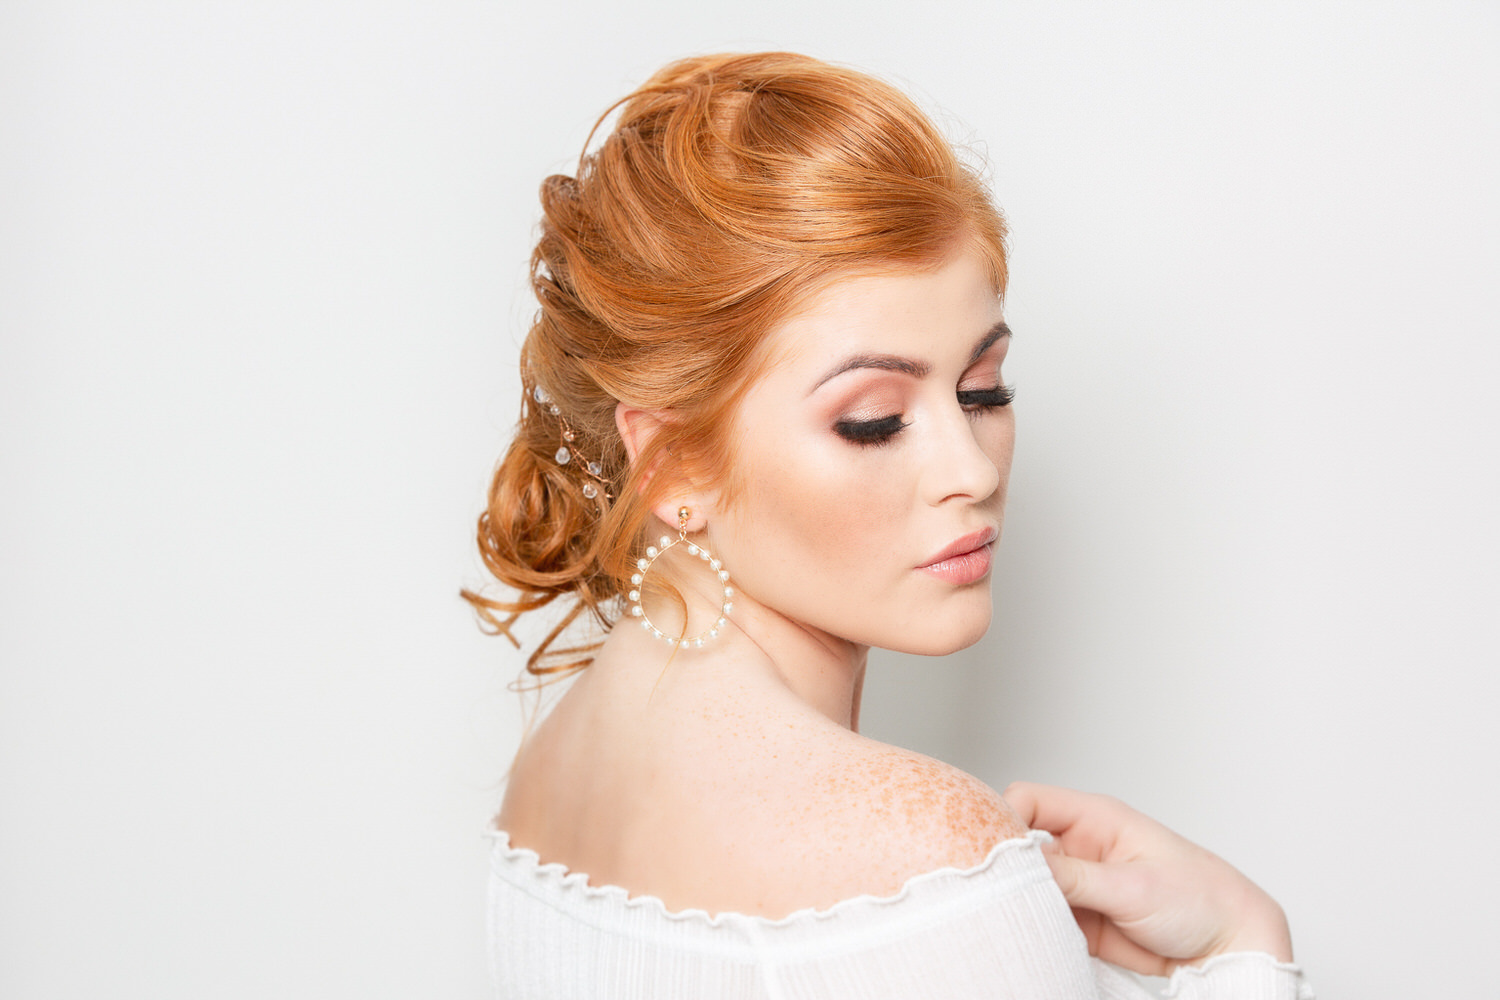 A red haired bride looking down towards the floor to show her makeup